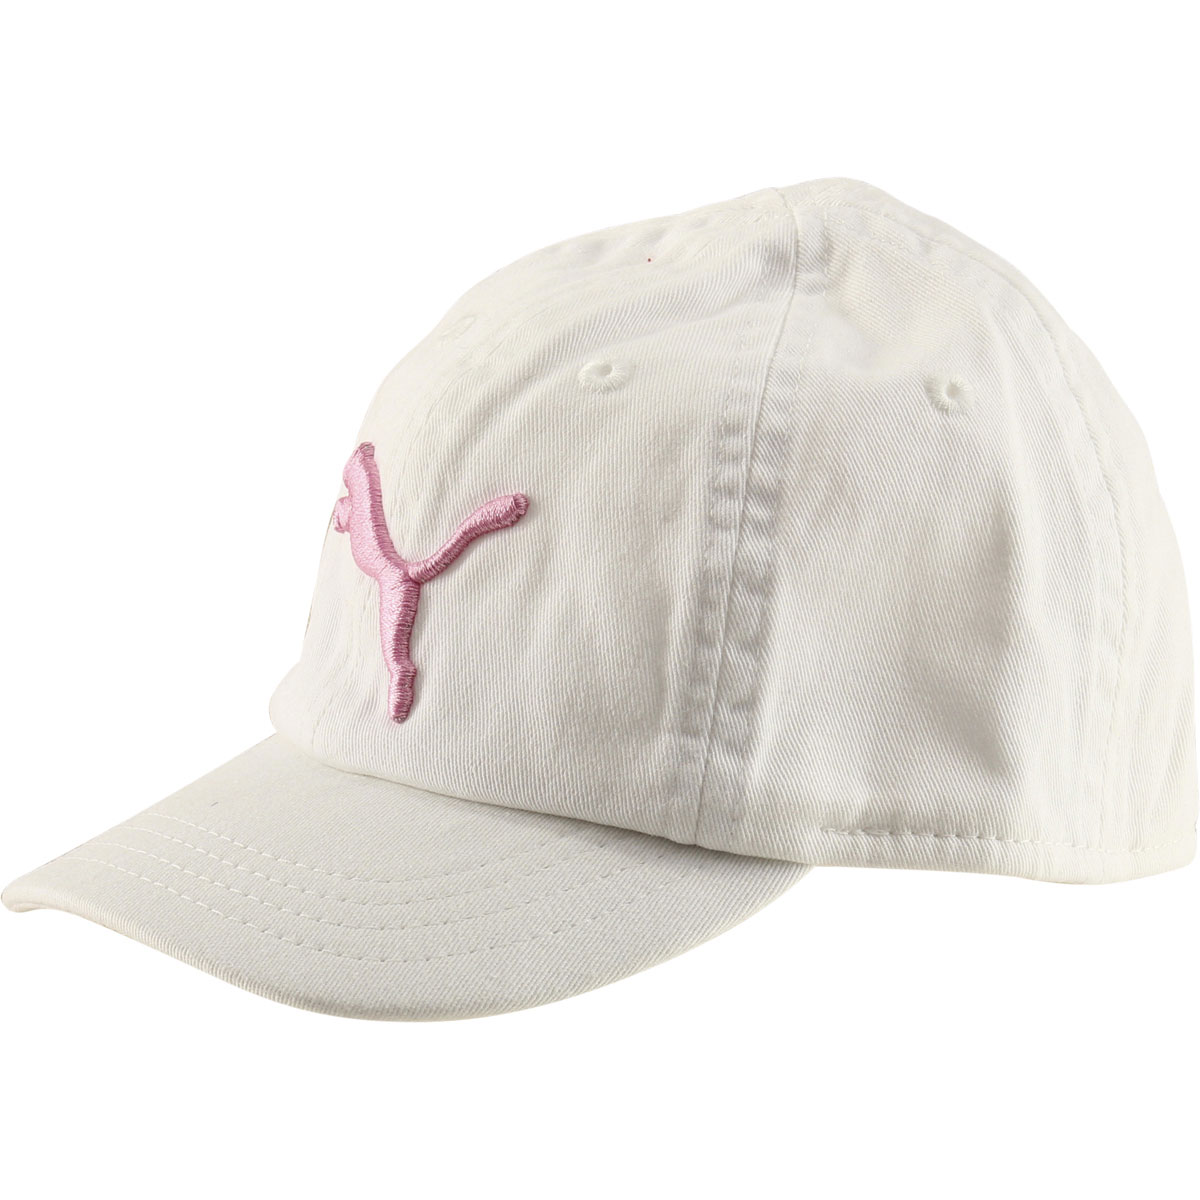 Puma Infant Girl s Evercat Podium Cotton Baseball Cap Hat  311d5dd921c